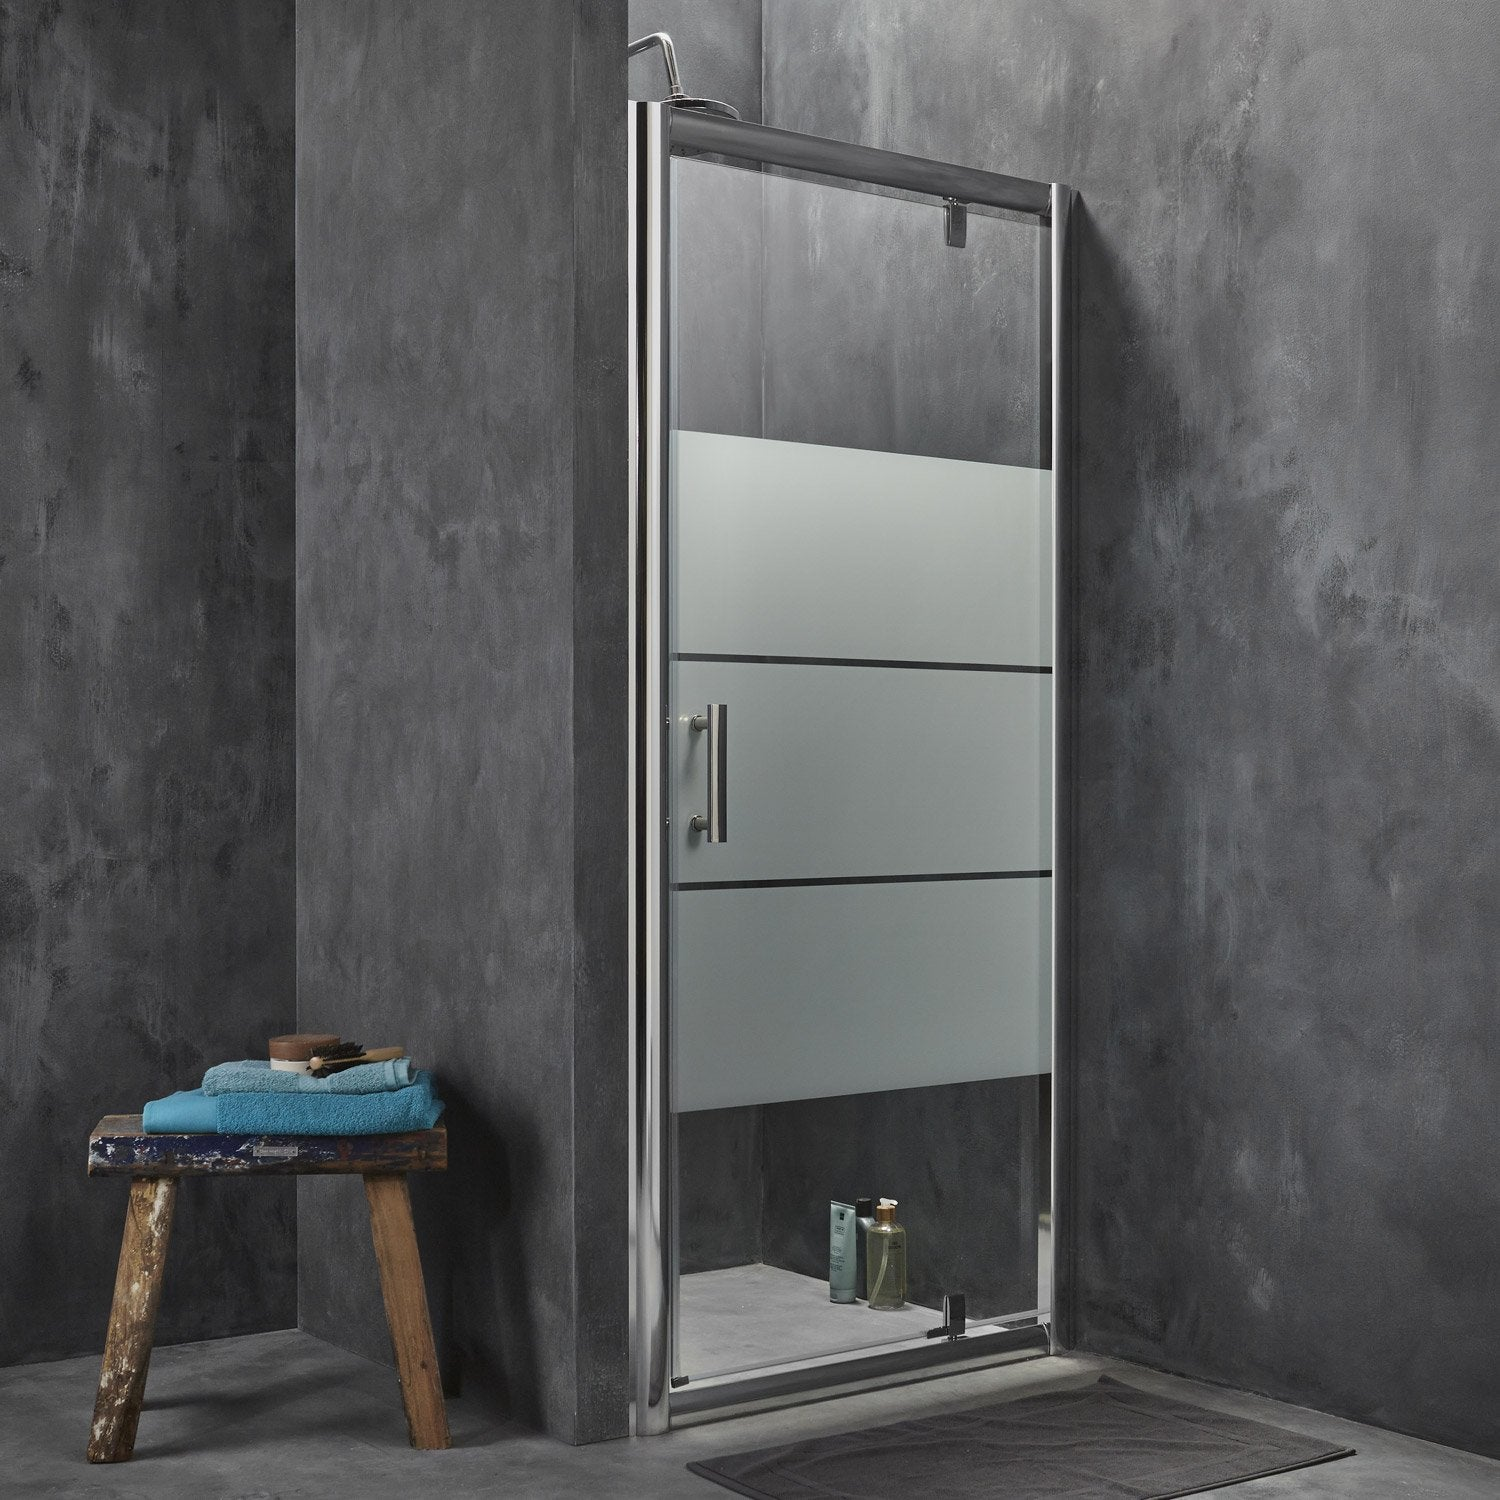 Porte de douche pivotante optima2 leroy merlin for Leroy merlin porte douche